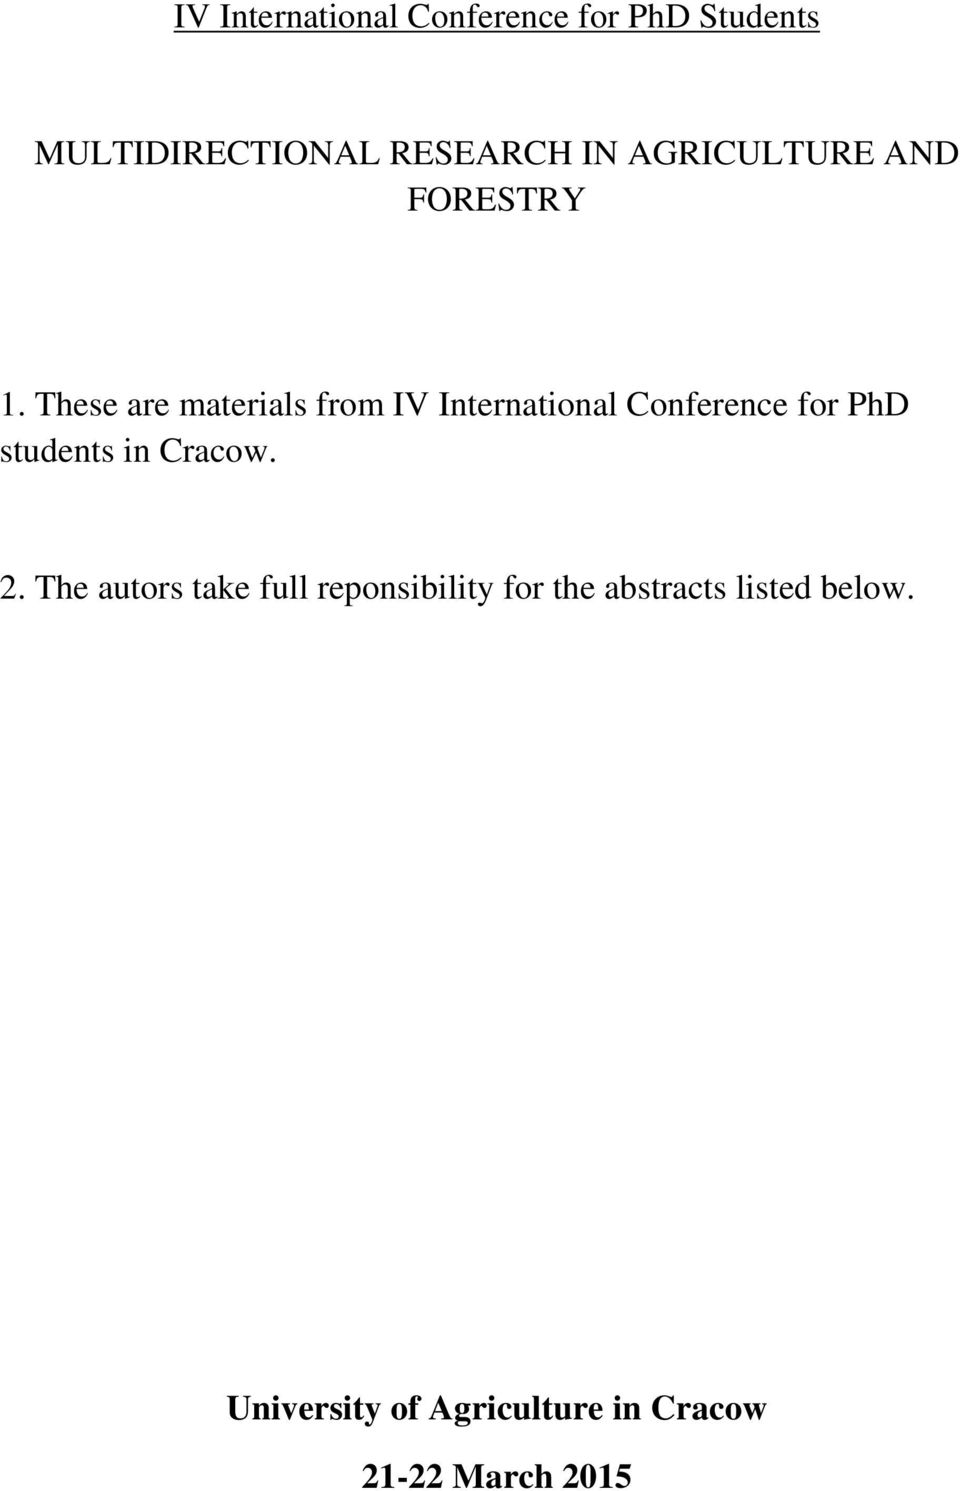 These are materials from IV International Conference for PhD students in